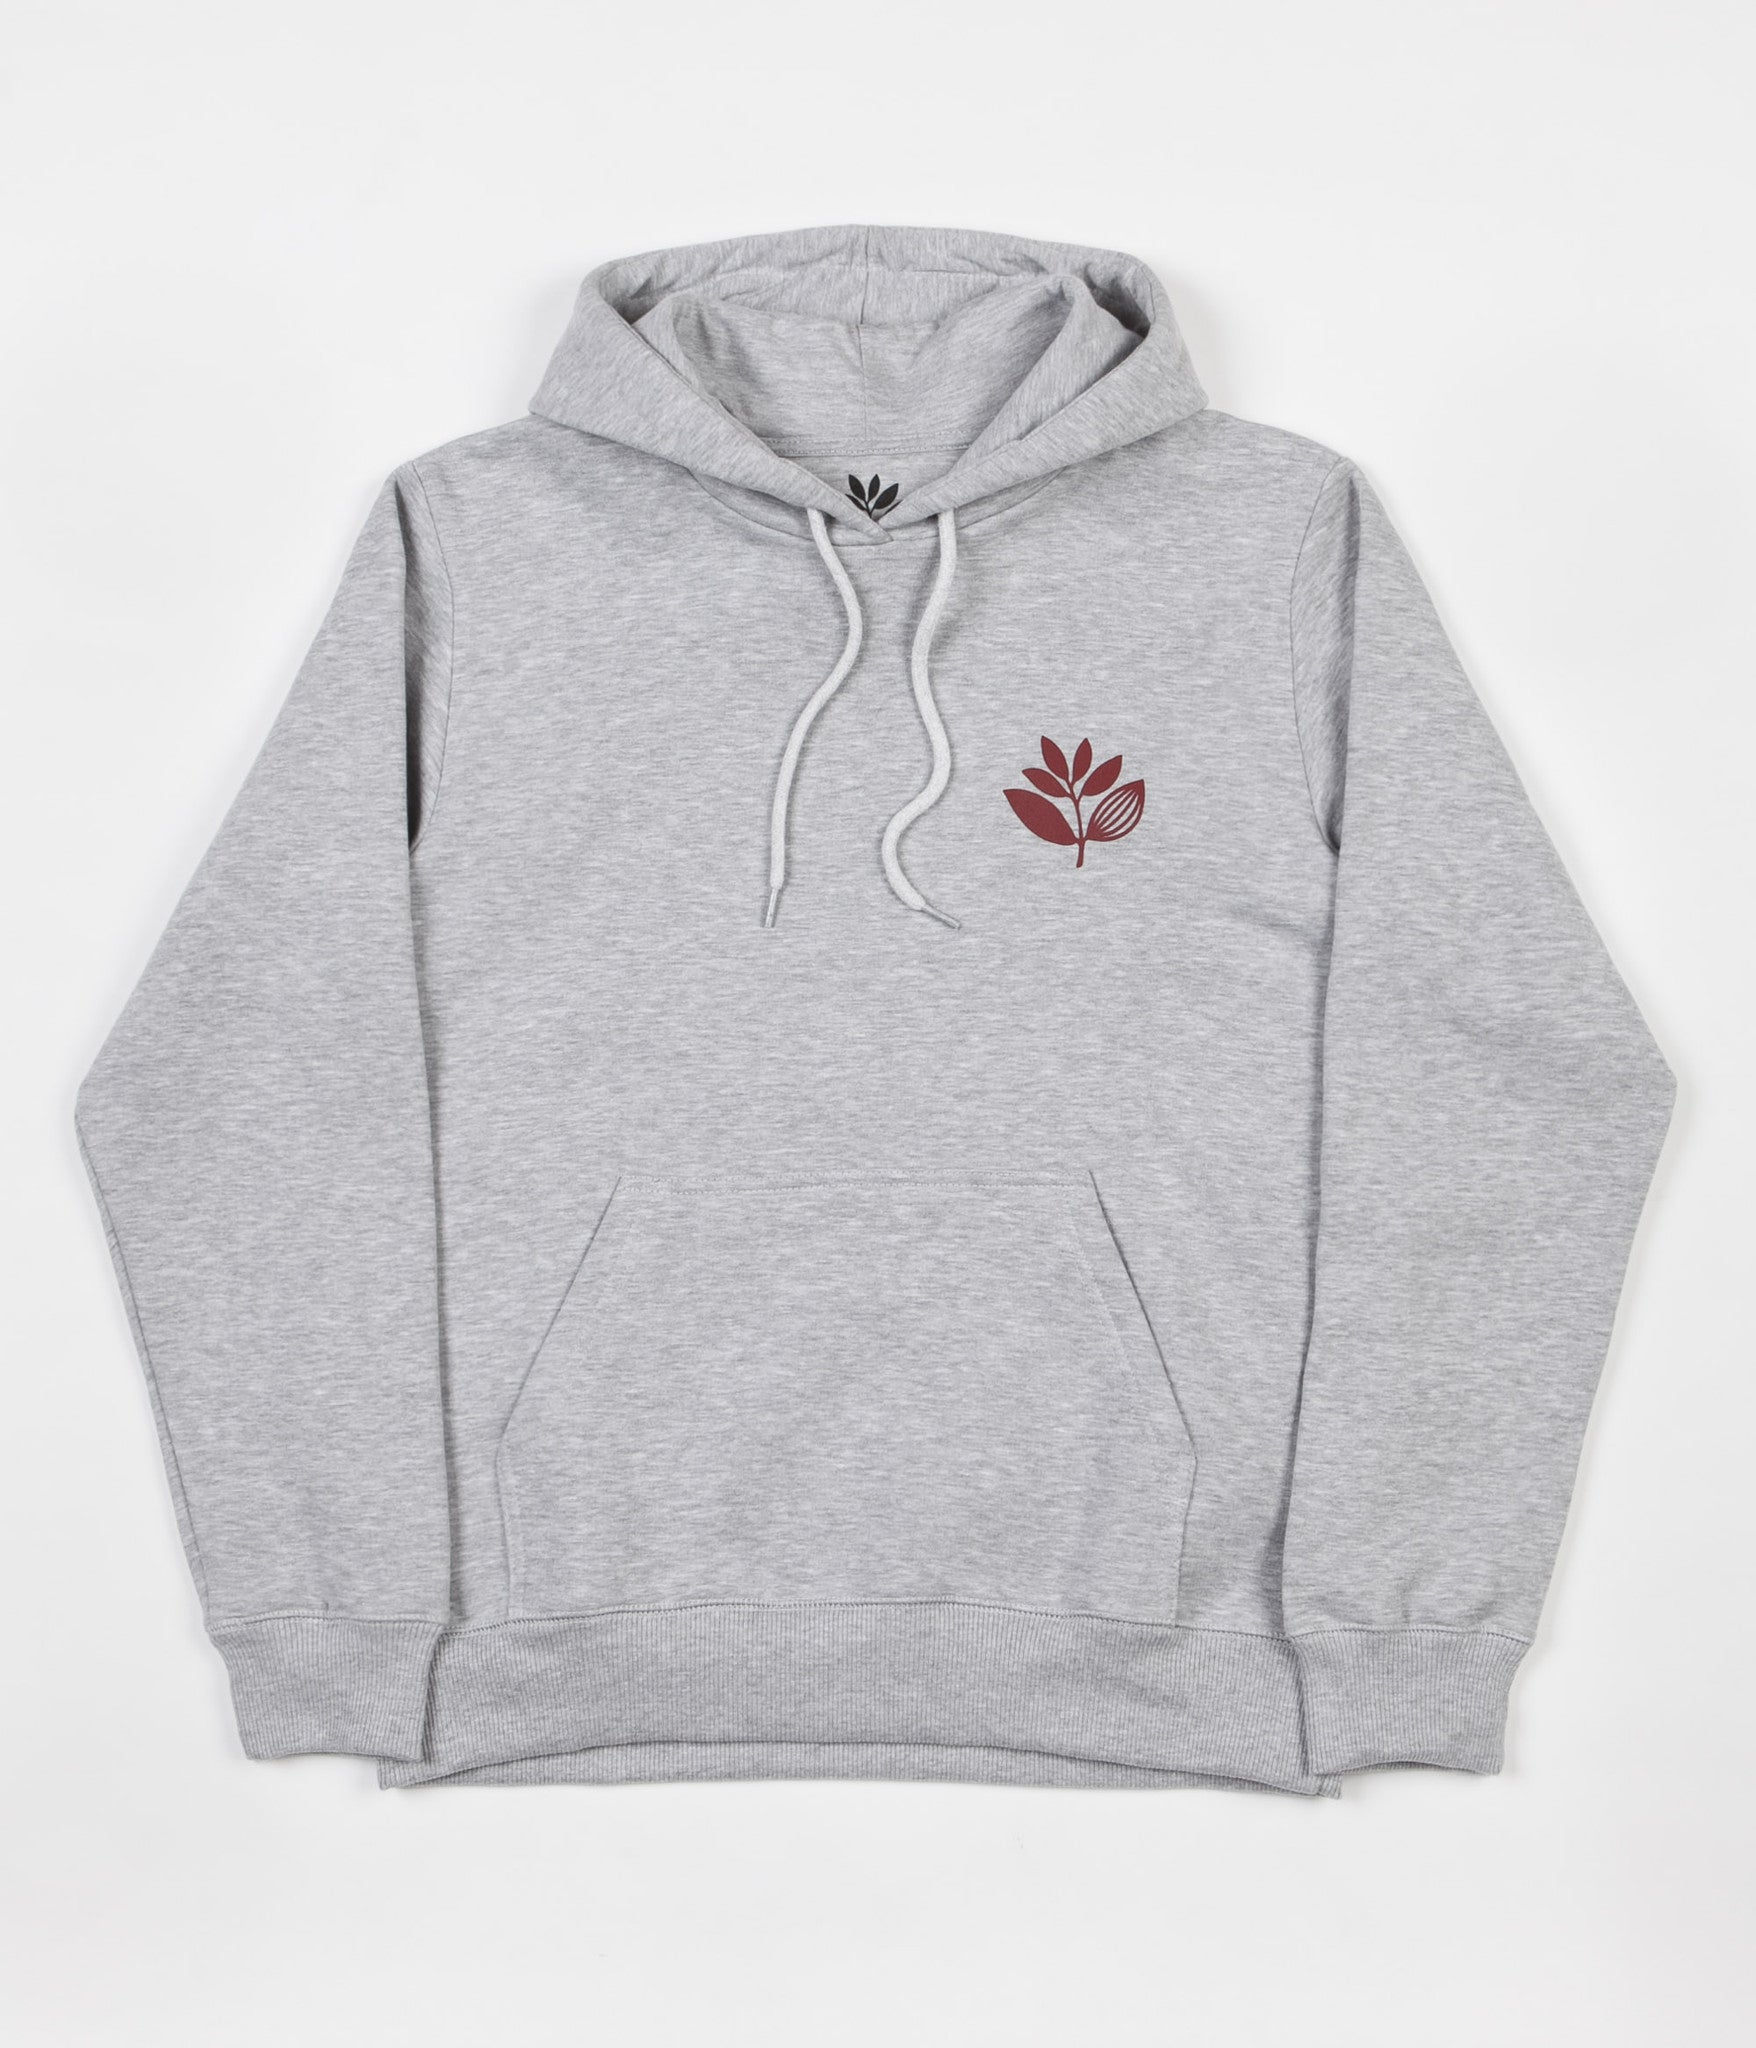 Magenta Plant Hooded Sweatshirt - Light Heather